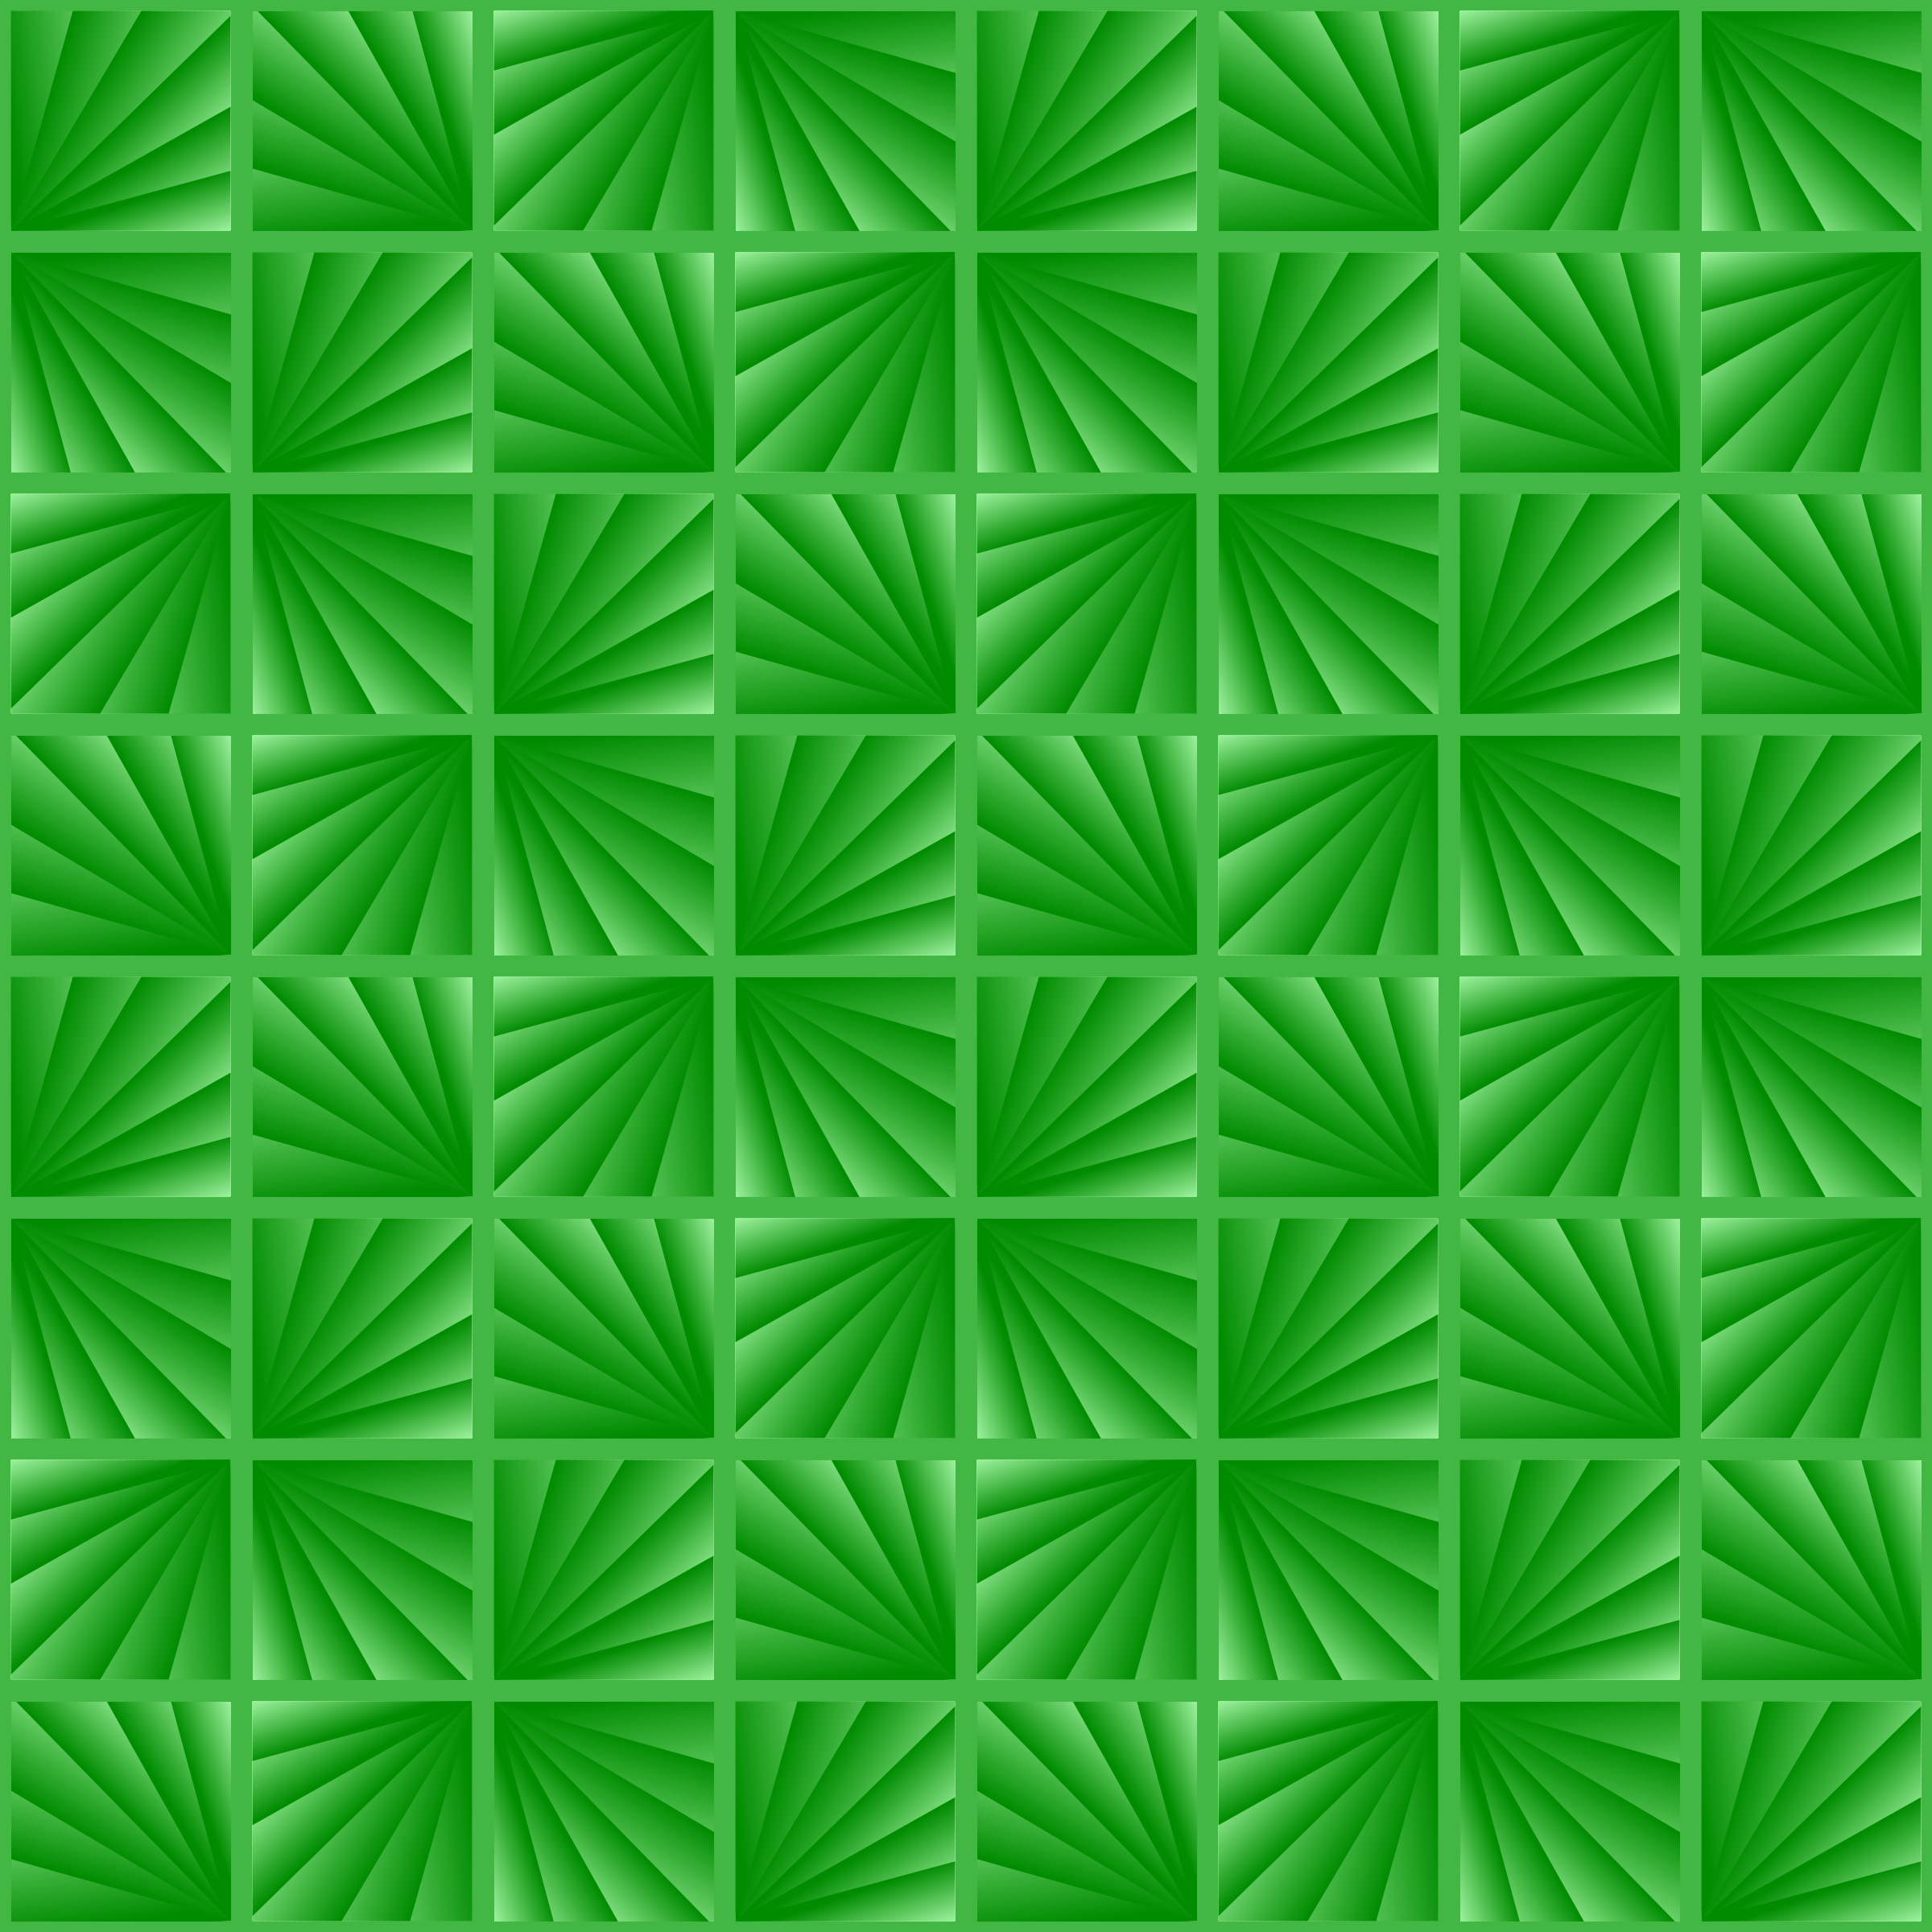 Background pattern 223 (colour 3) by Firkin